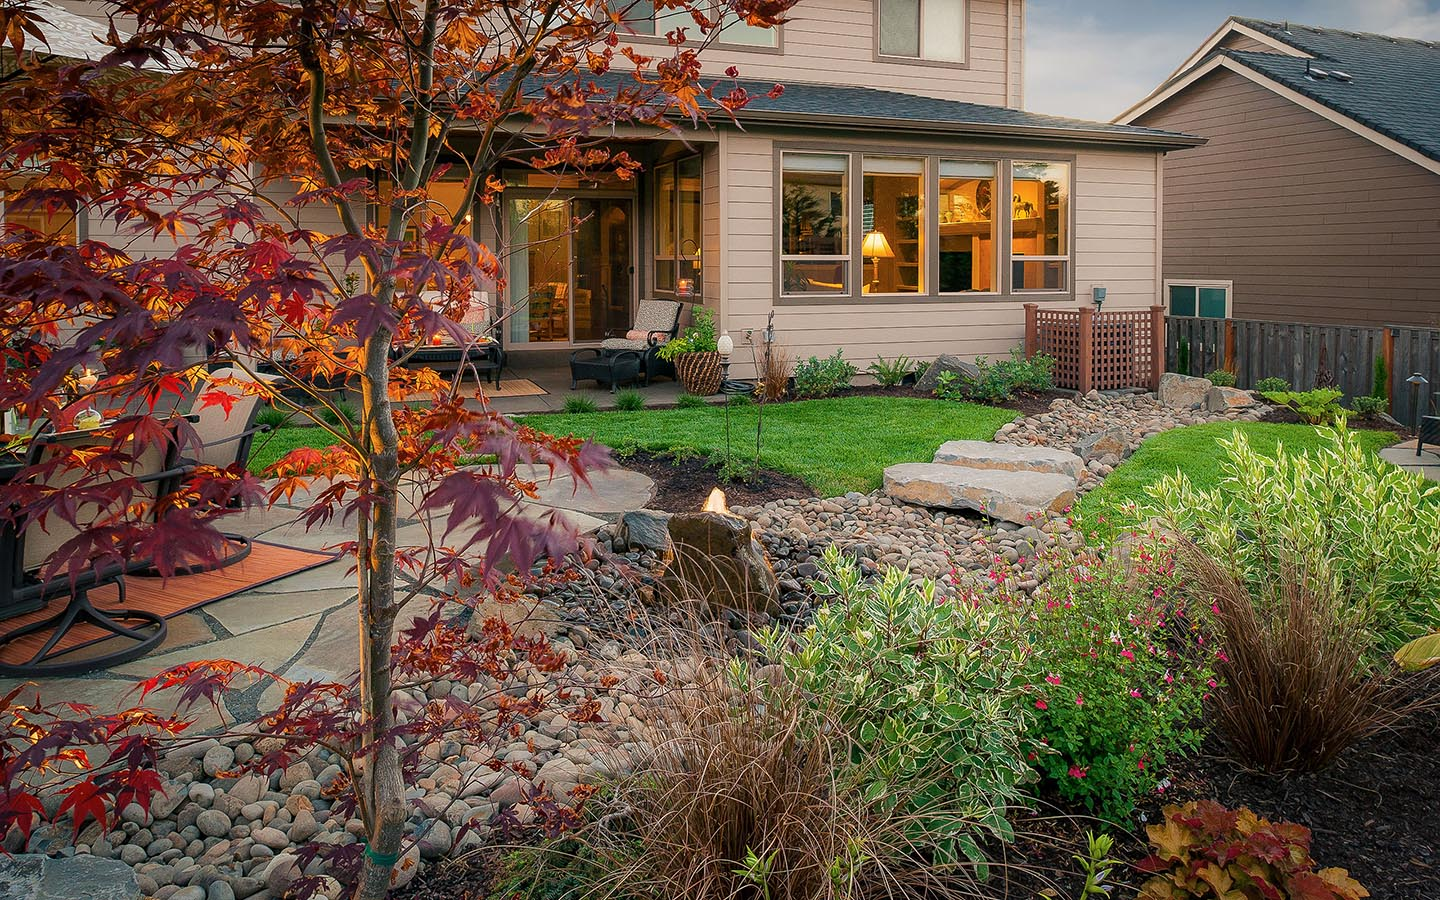 peterson_property_0016